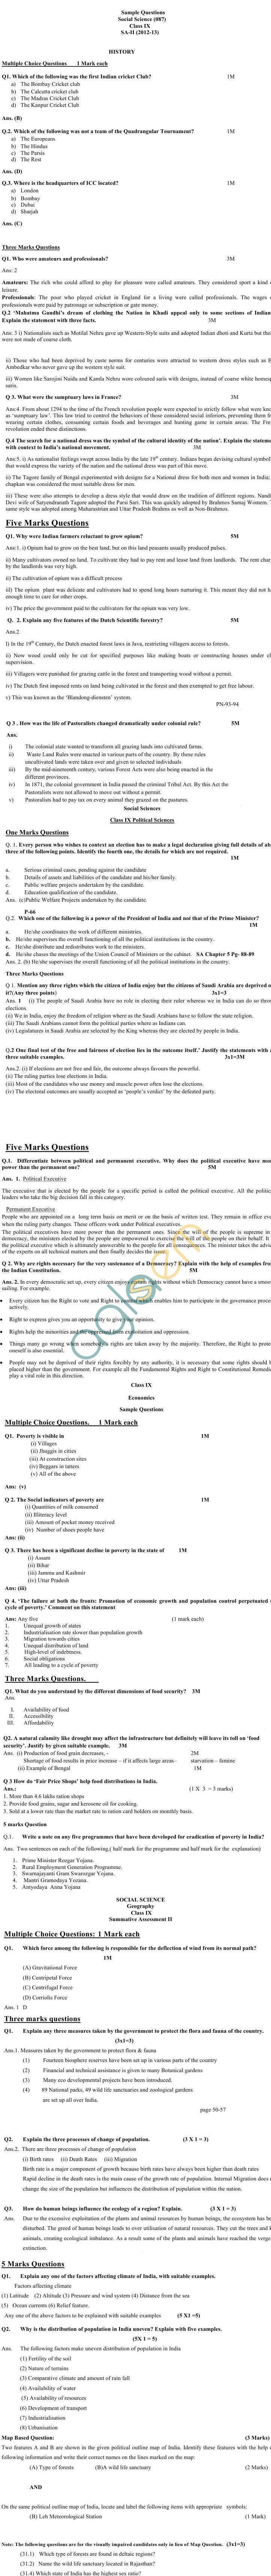 Cbse sample papers for class 6 social science sa2 business plan seo internet marketing stores ebay com foxy